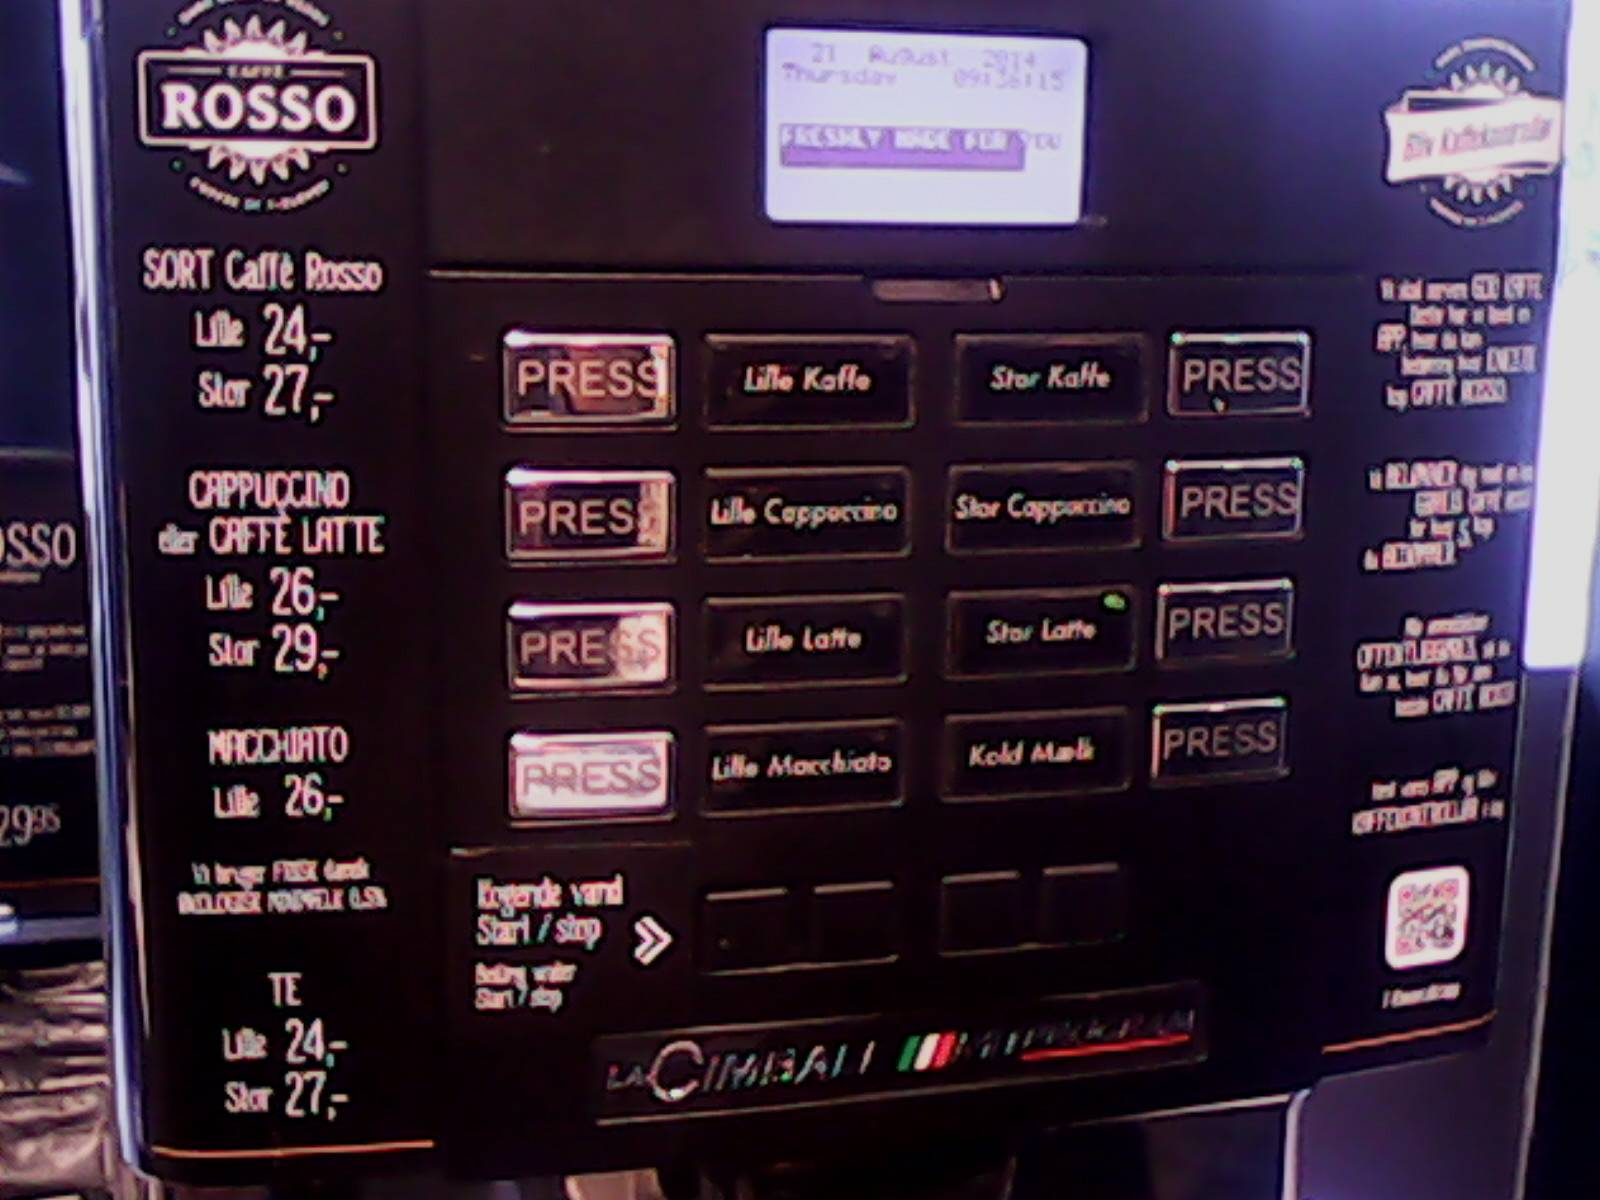 711 coffee machine